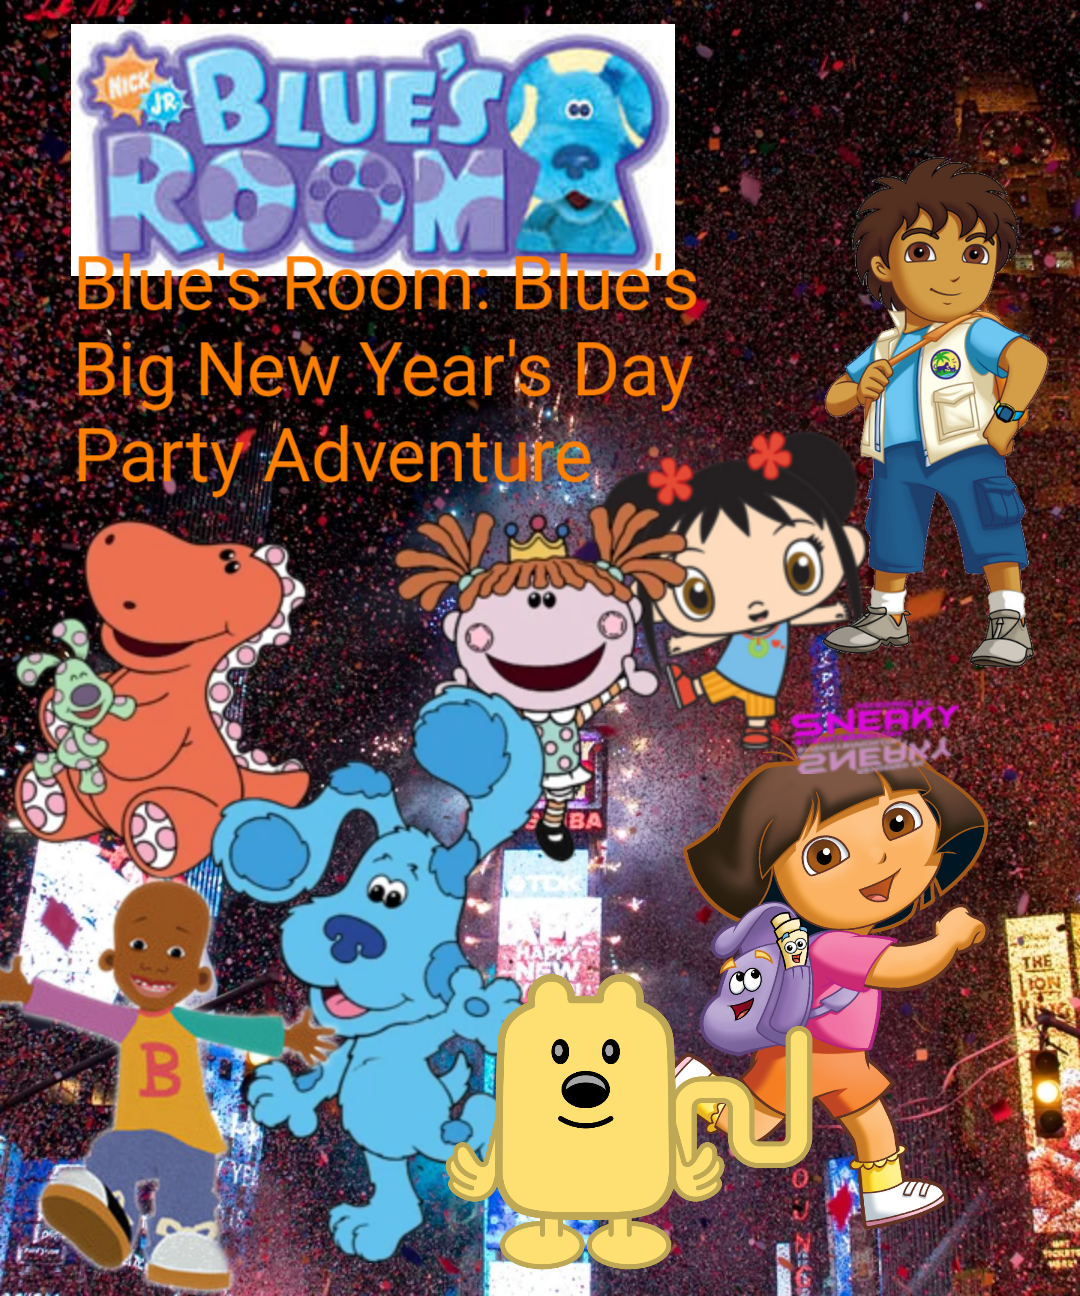 Blue's Room: Blue's Big New Year's Day Party Adventure